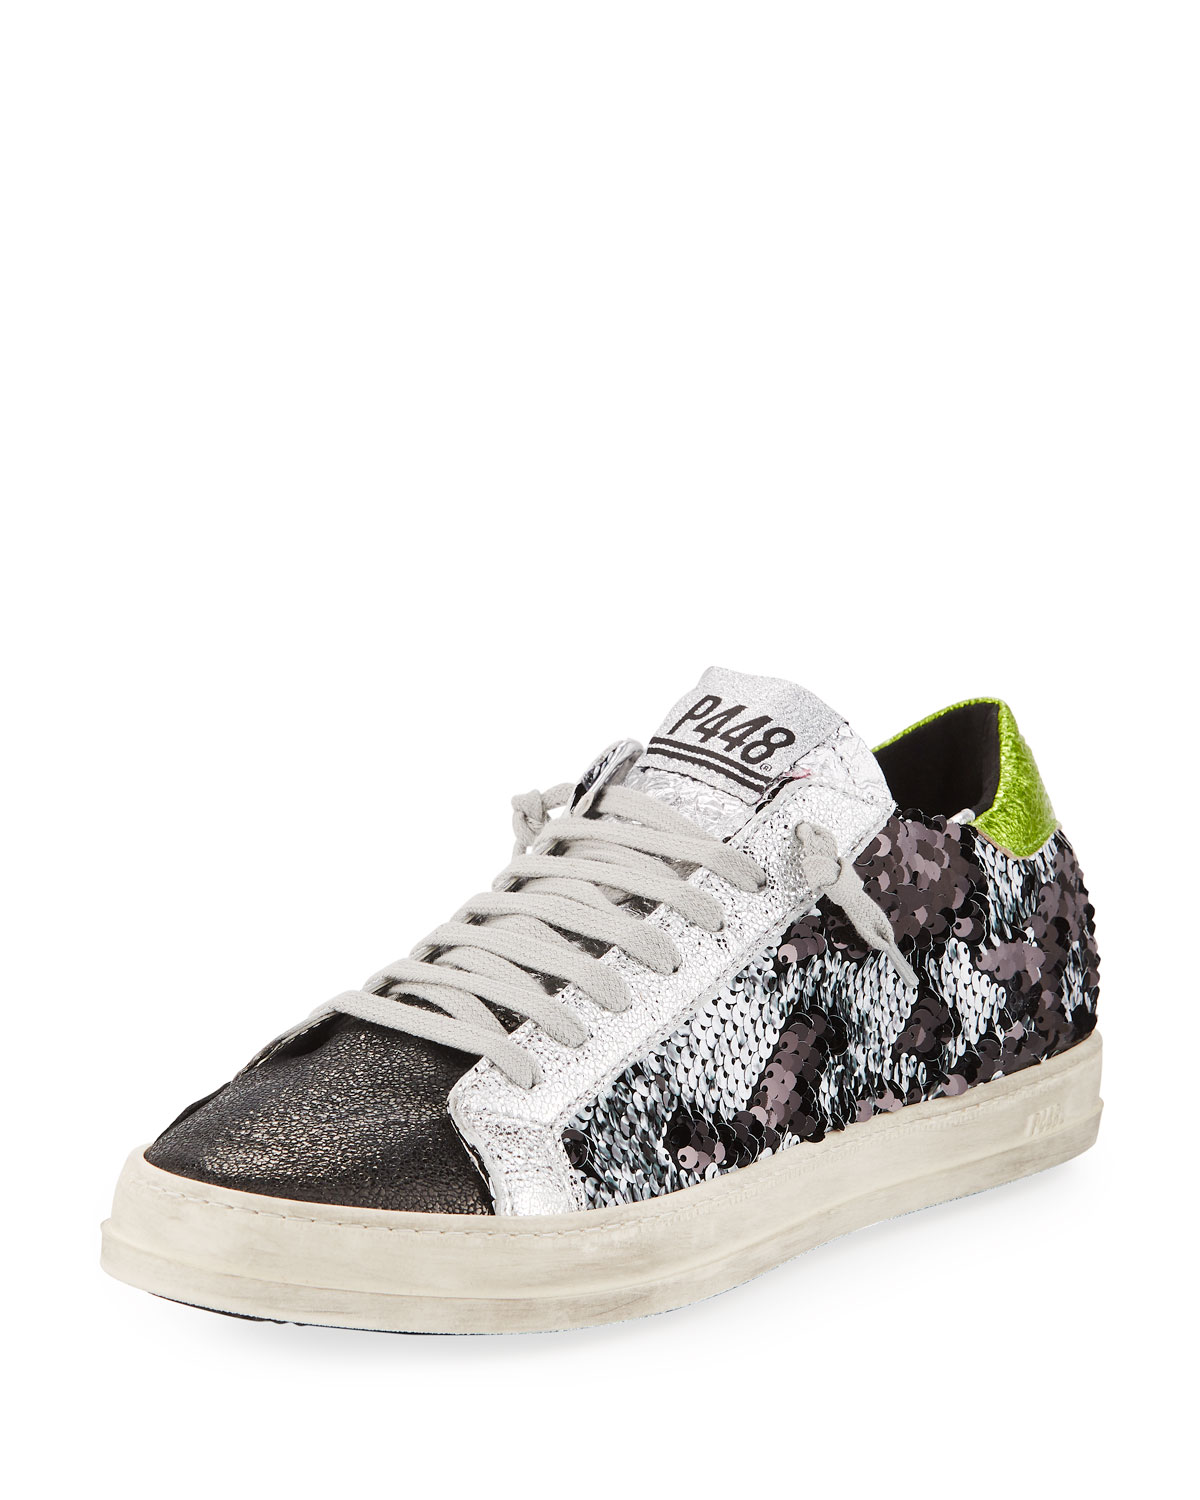 Sequined Low-Top Sneaker